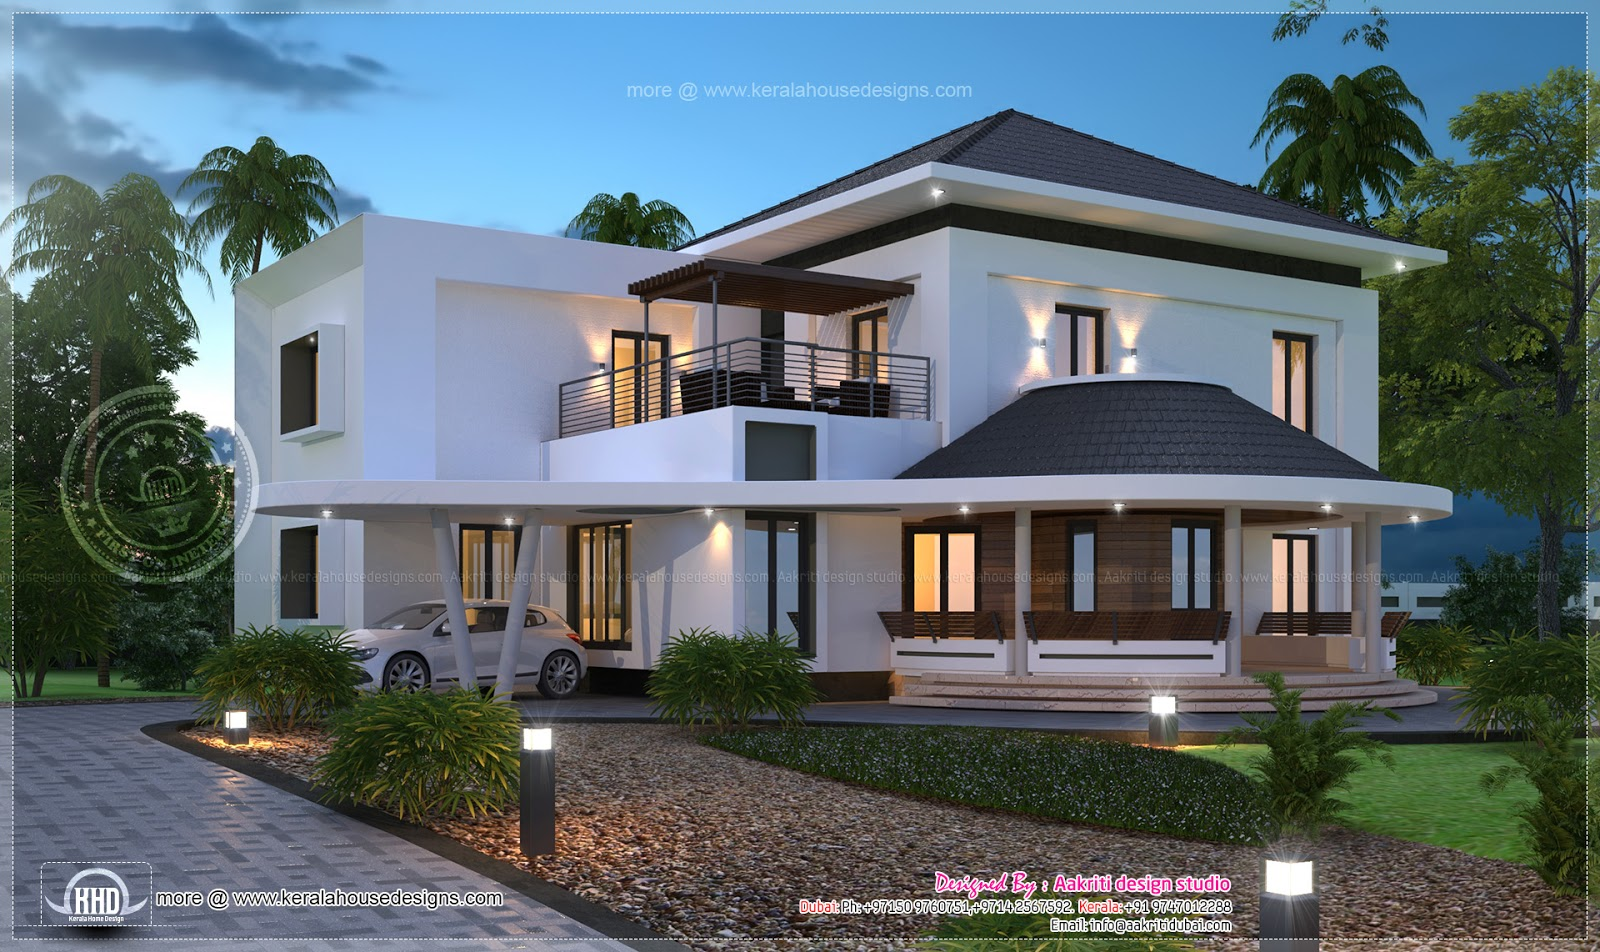 Beautiful 3200 sq ft modern villa exterior home kerala plans for Small villa plans in kerala